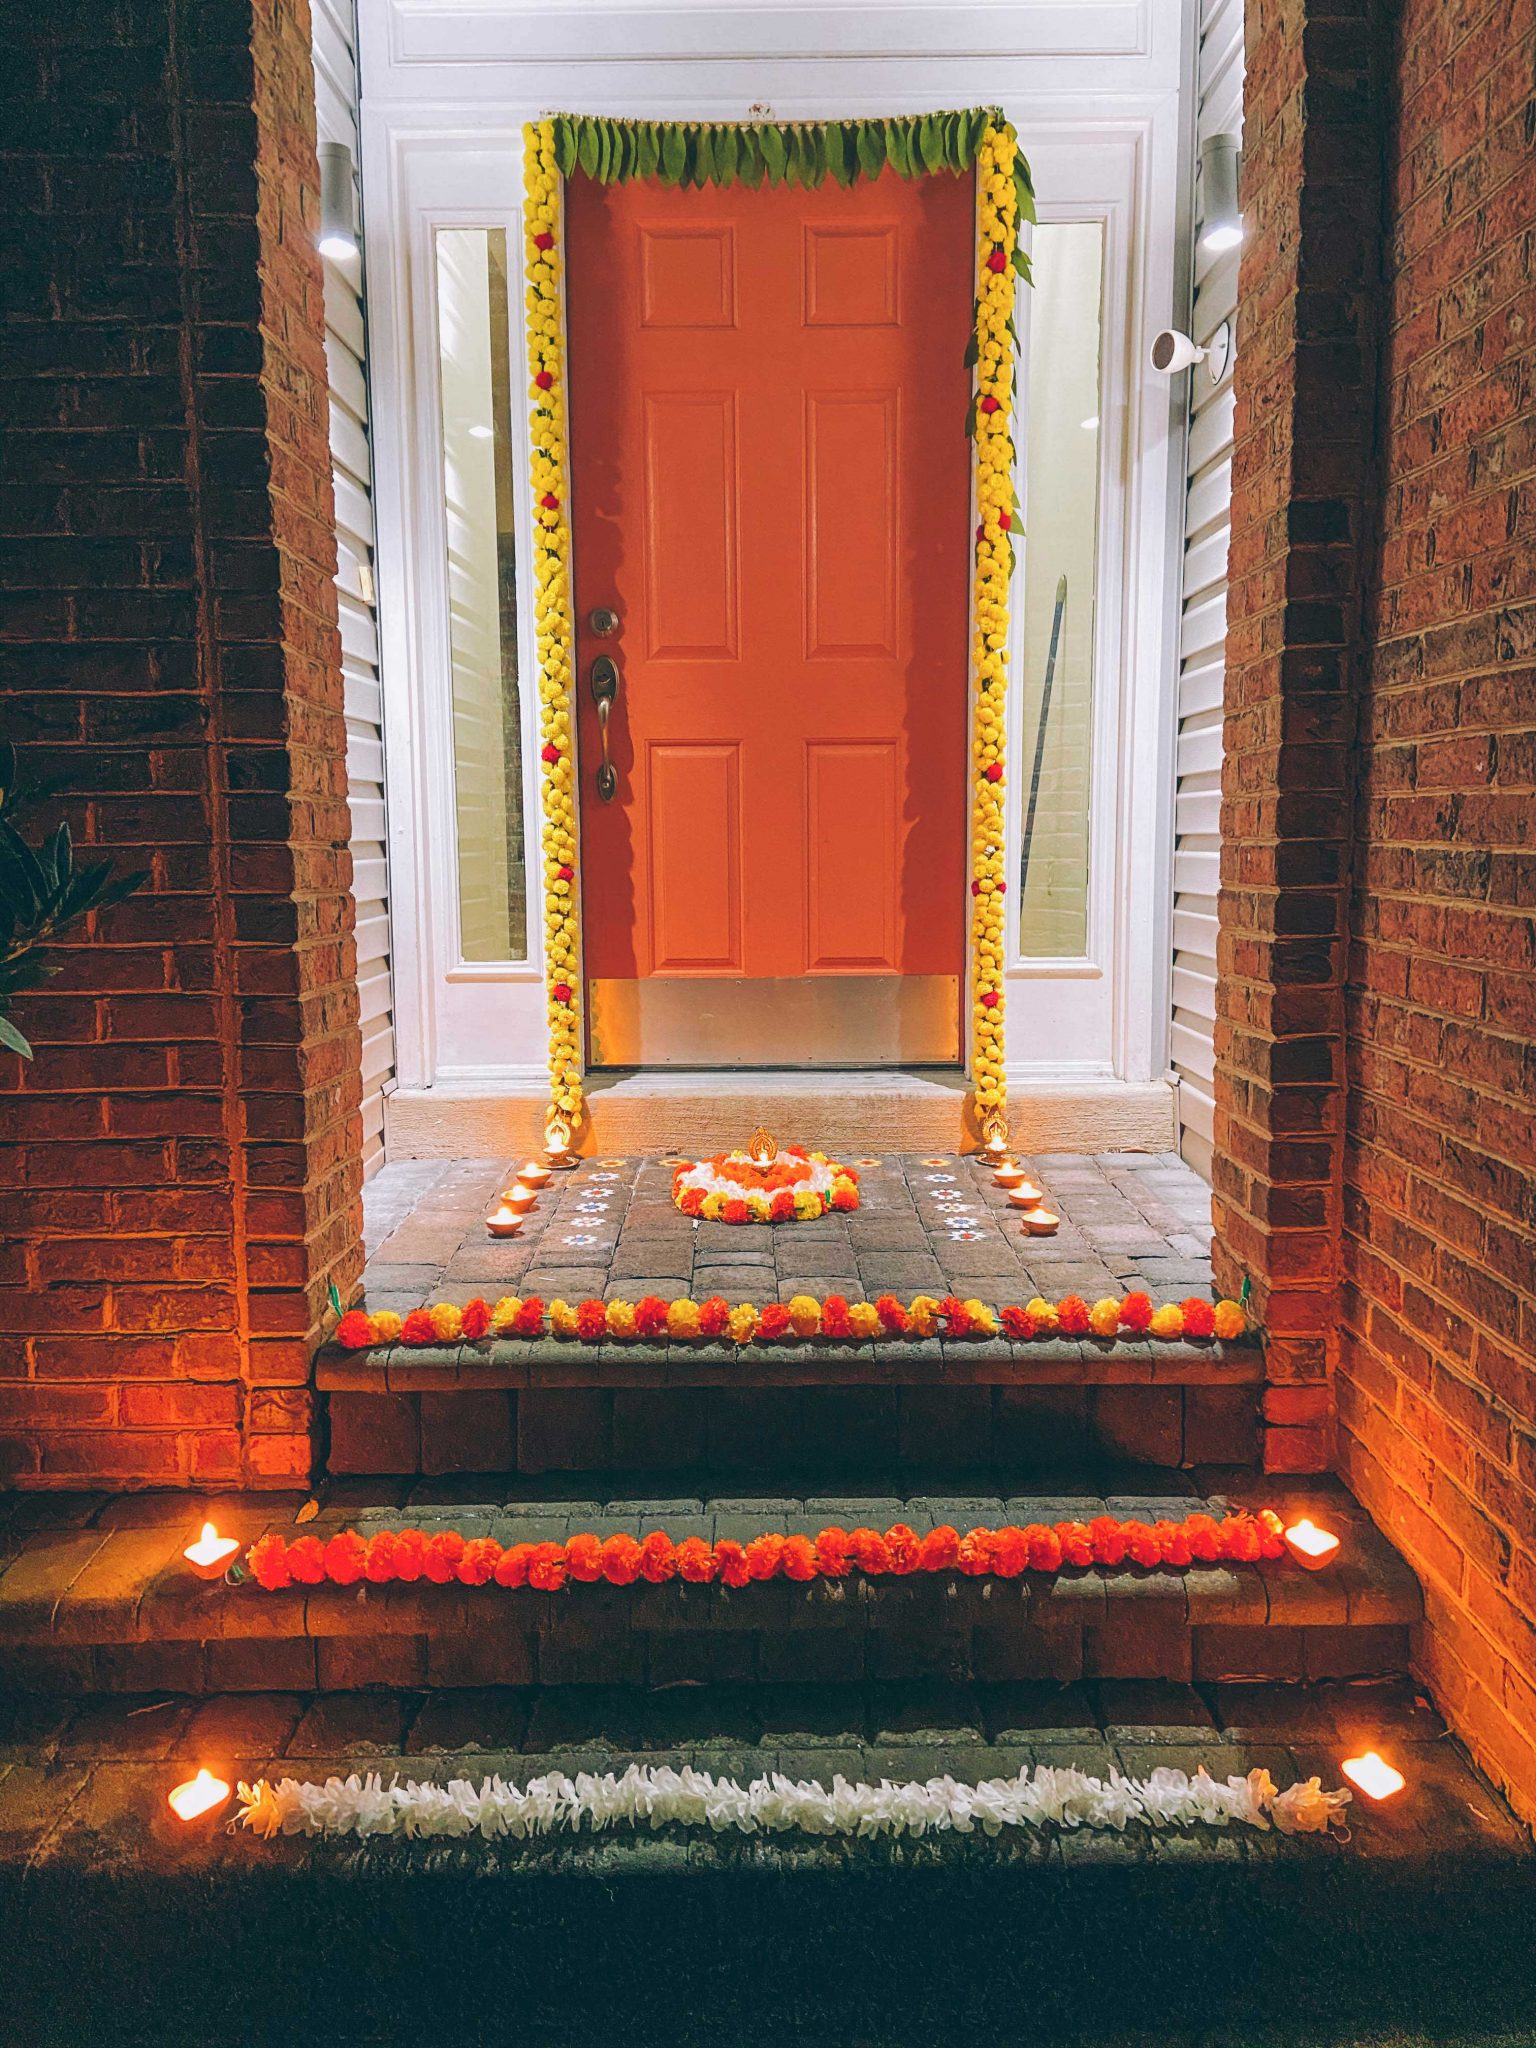 Simple Diwali Decoration ideas featured by top MD lifestyle blogger, Dreaming Loud | Diwali Decoration Ideas: image of a front door and porch decorated with Mango Leaf Toran, Chrysanthemum garlands, Wisteria garlands,Marigold Garlands,Ganesh Diya, Rangoli Stencil, Rangoli Sand Colors, and Clay diyas.